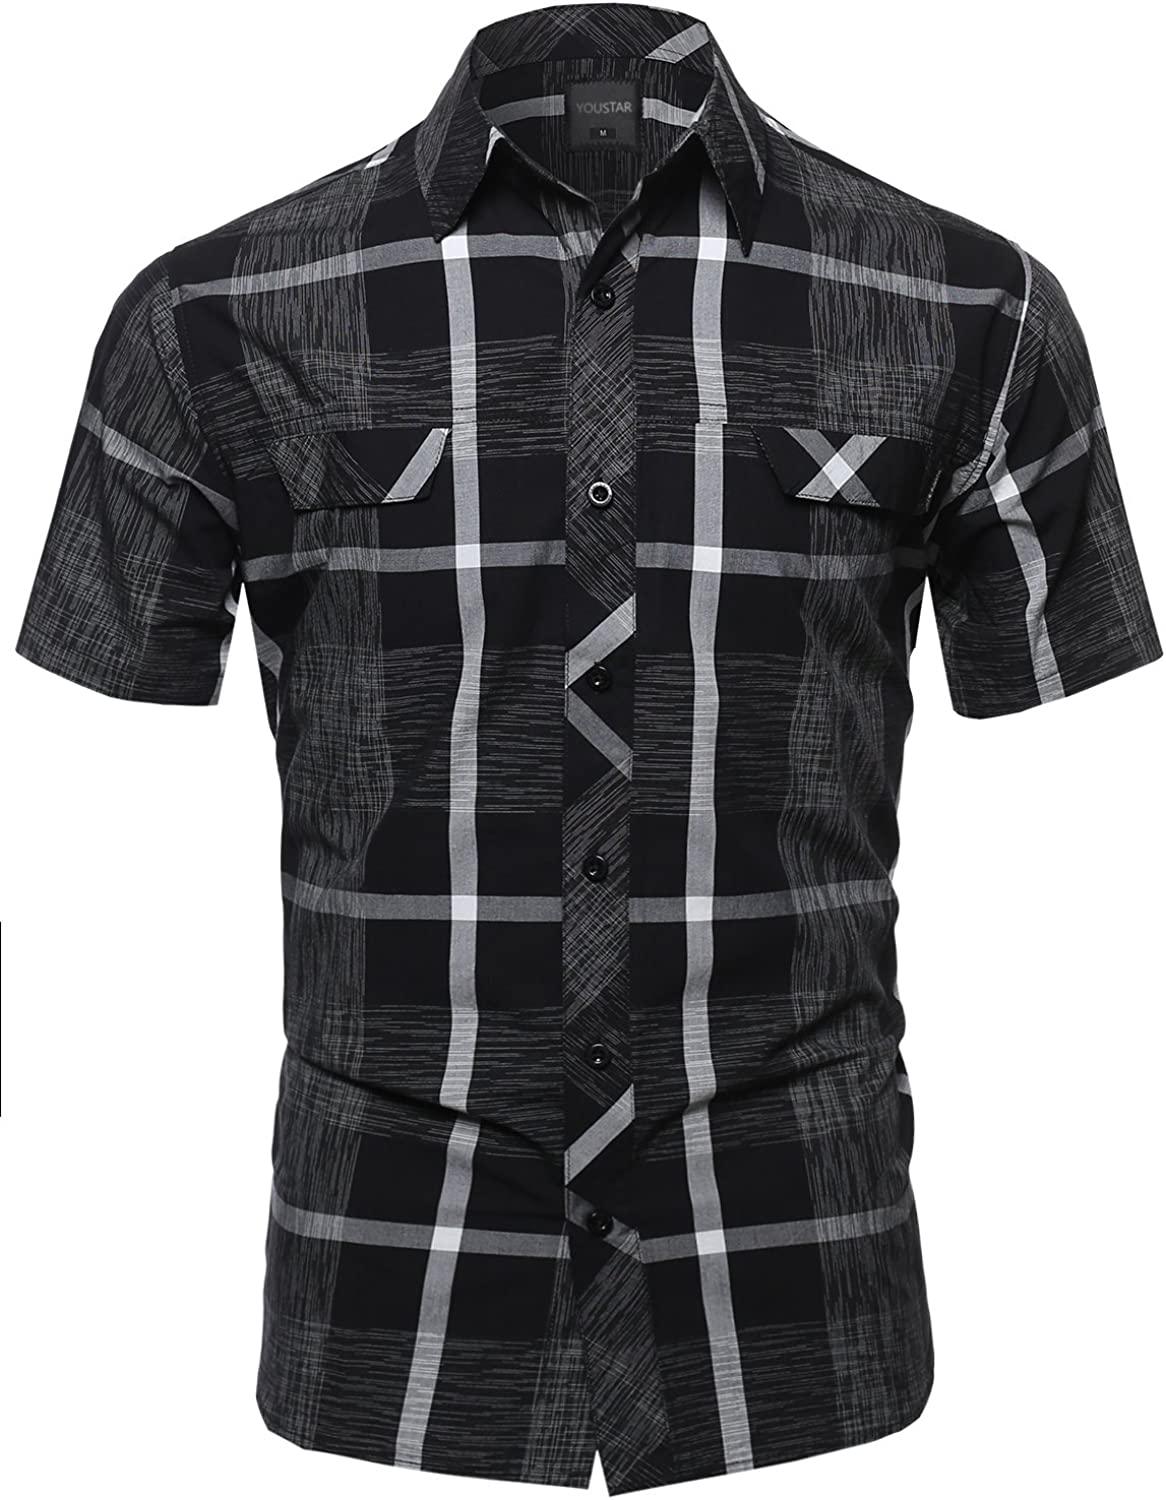 Youstar Men's Short Sleeve Outstanding Button Shirts Down Max 85% OFF